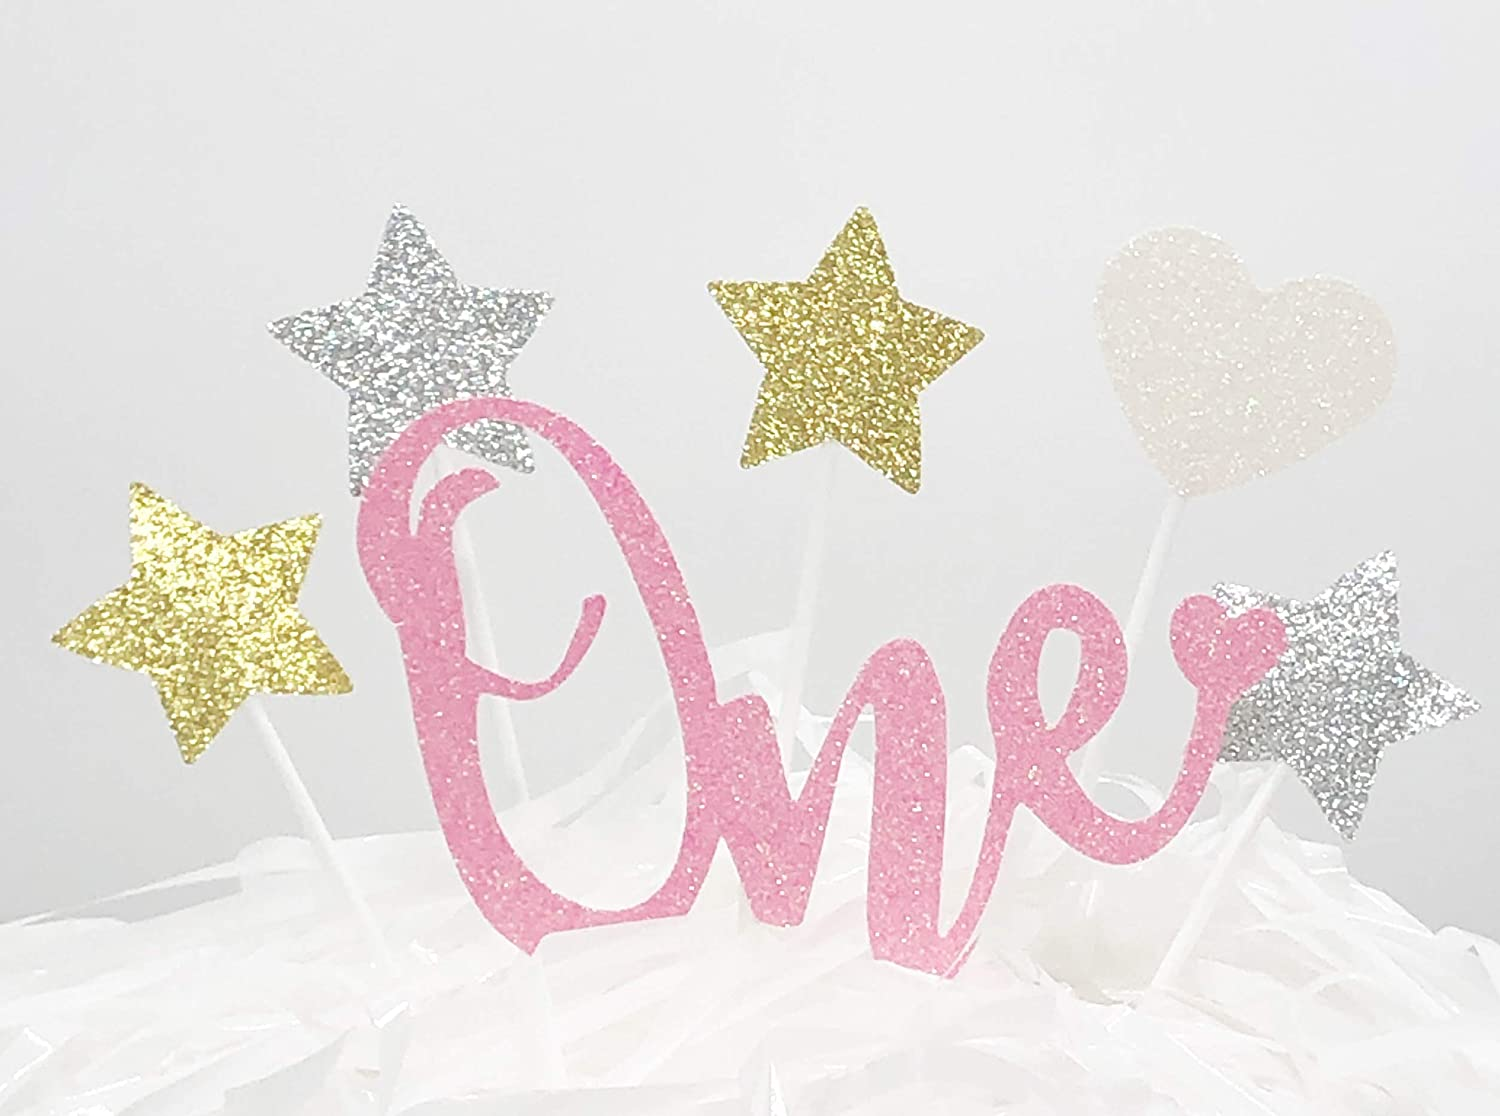 AILEXI 6 Counts Glitter Happy Birthday or Anniversary Cake Decorating Toppers - One Set - Pink